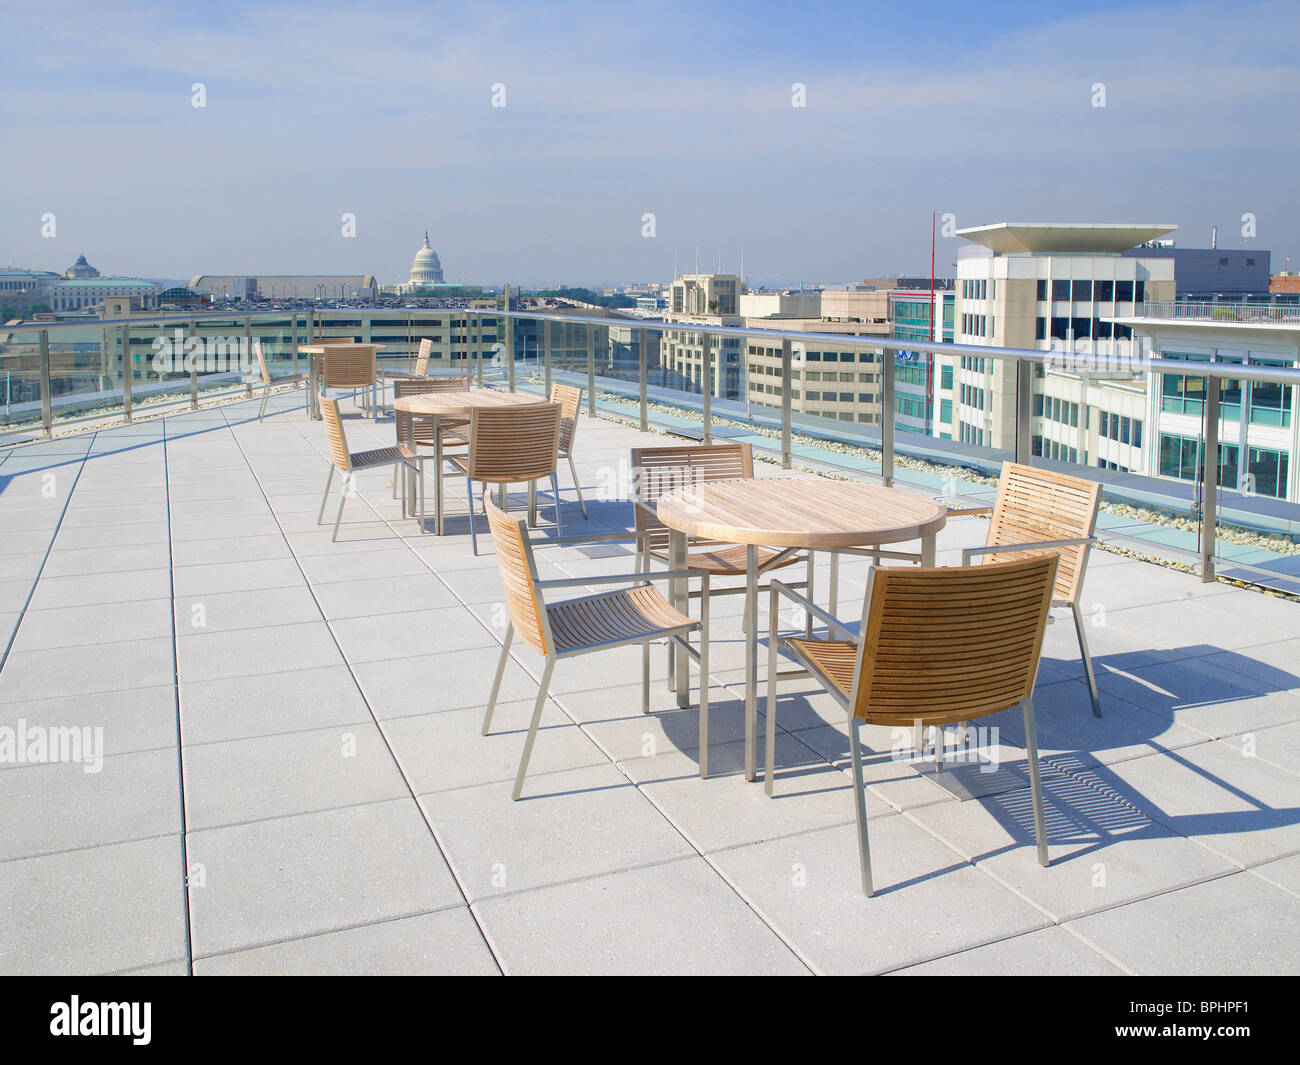 Rooftop Patio With Capitol In Background, Washington DC, USA - Stock Image